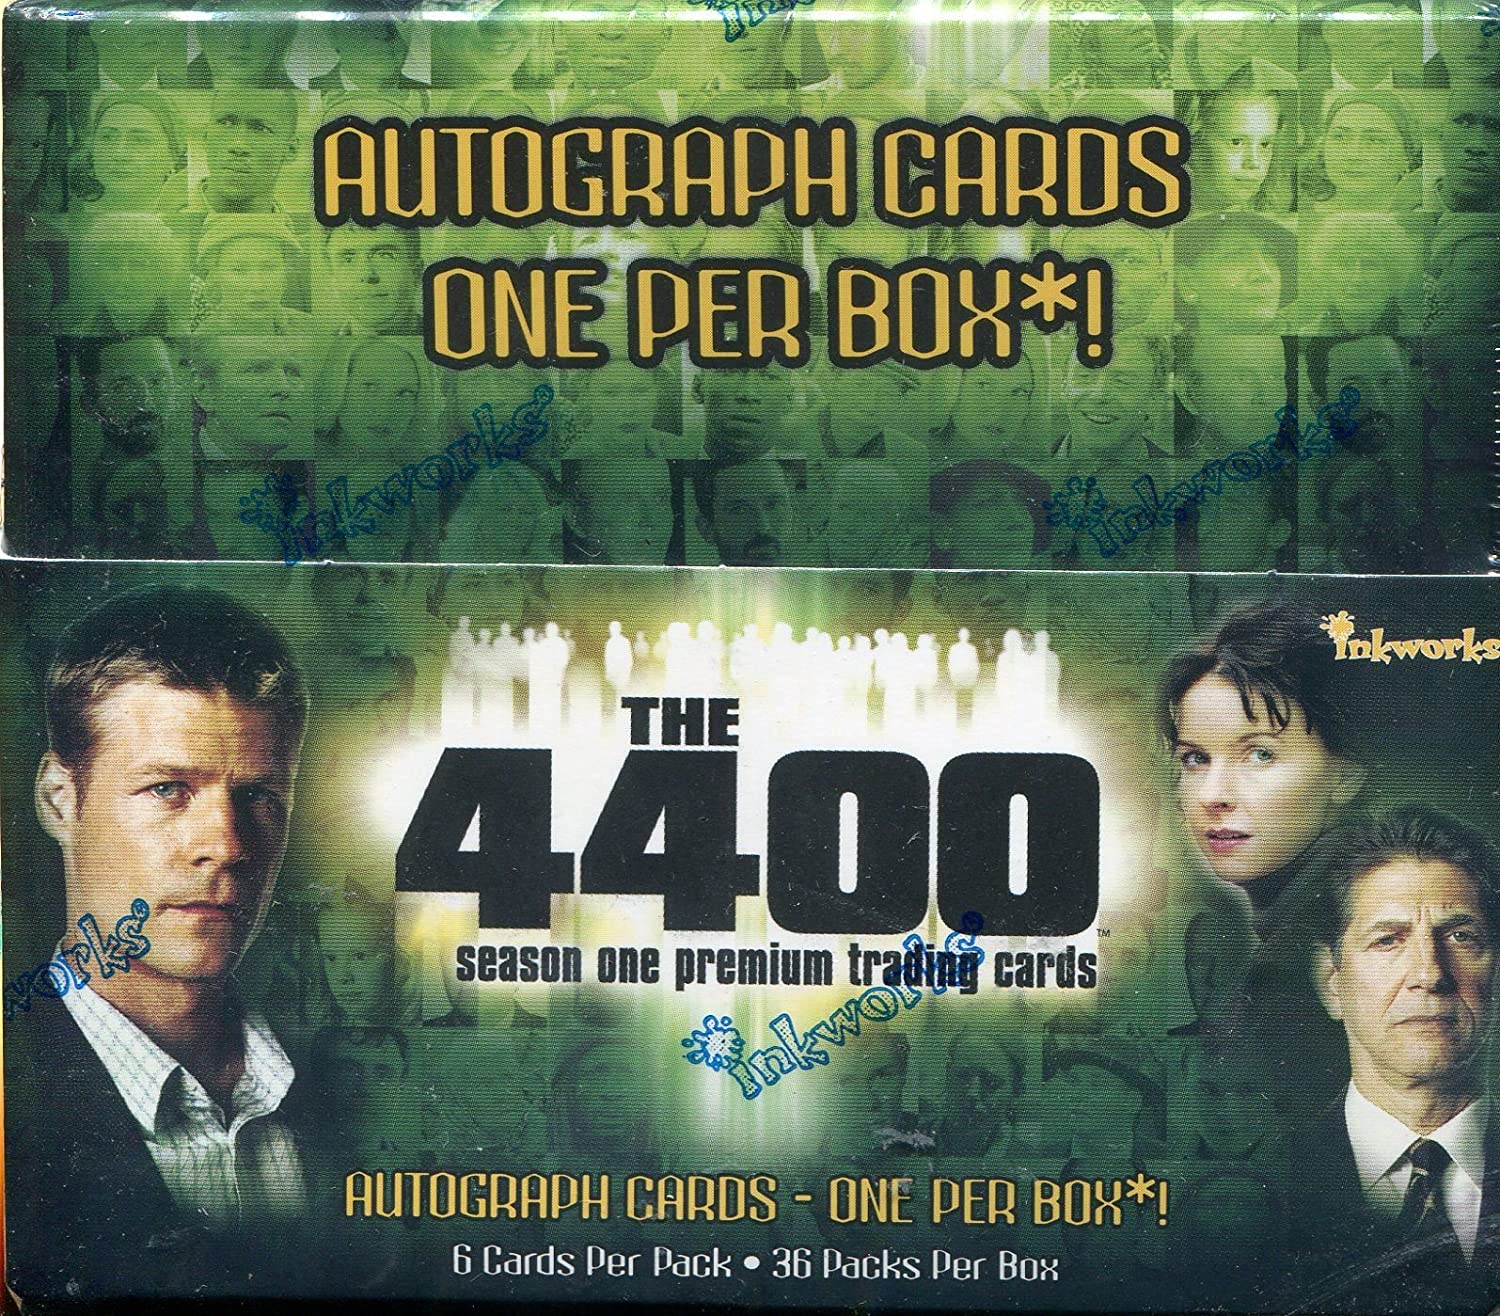 The 4400 Season 1 Factory Sealed Hobby Box 36 Packs